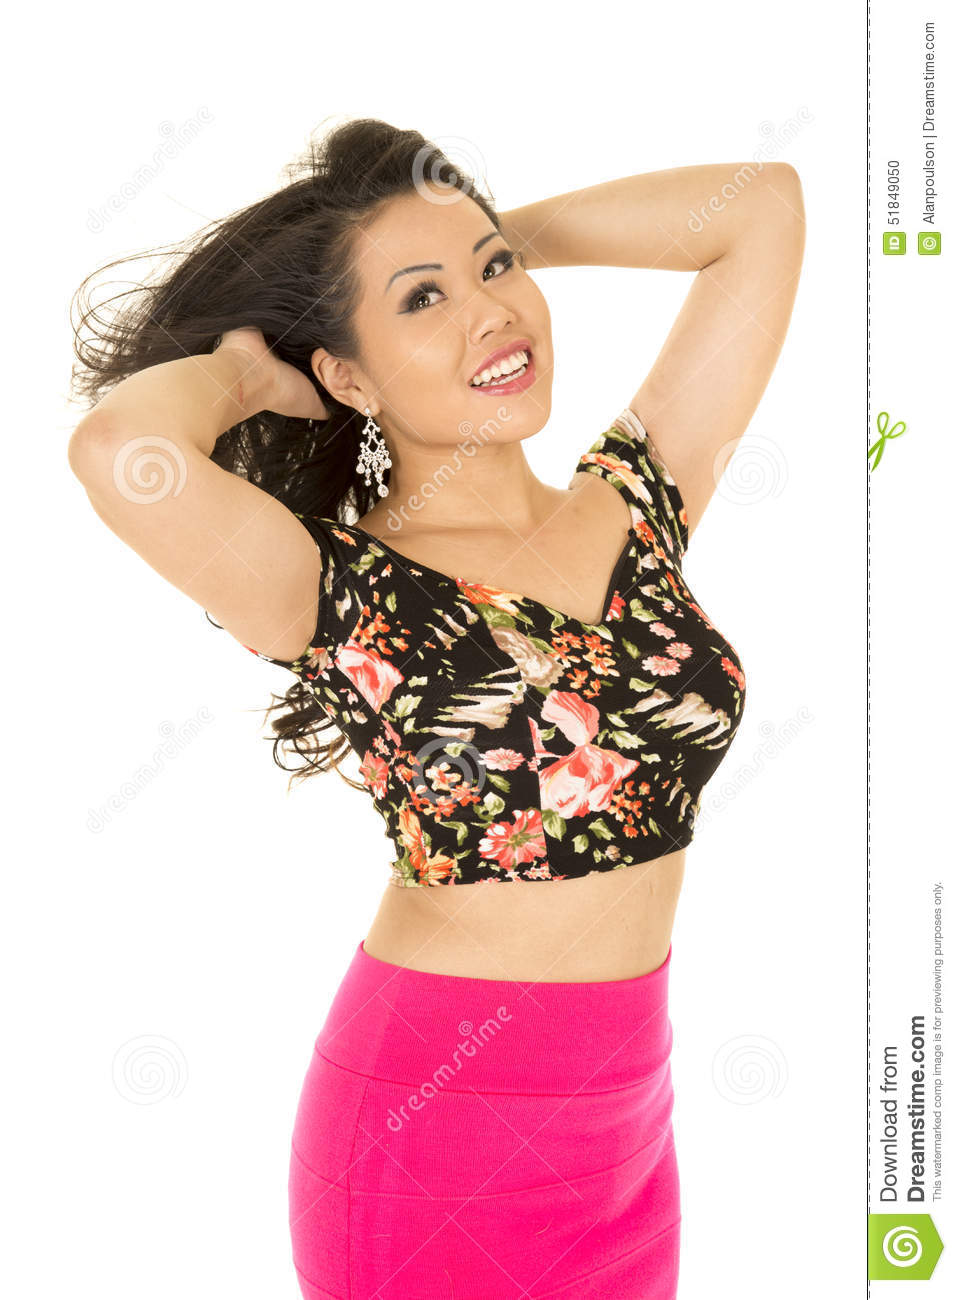 Asian Woman Pink Skirt Standing Both Hands Up Smile